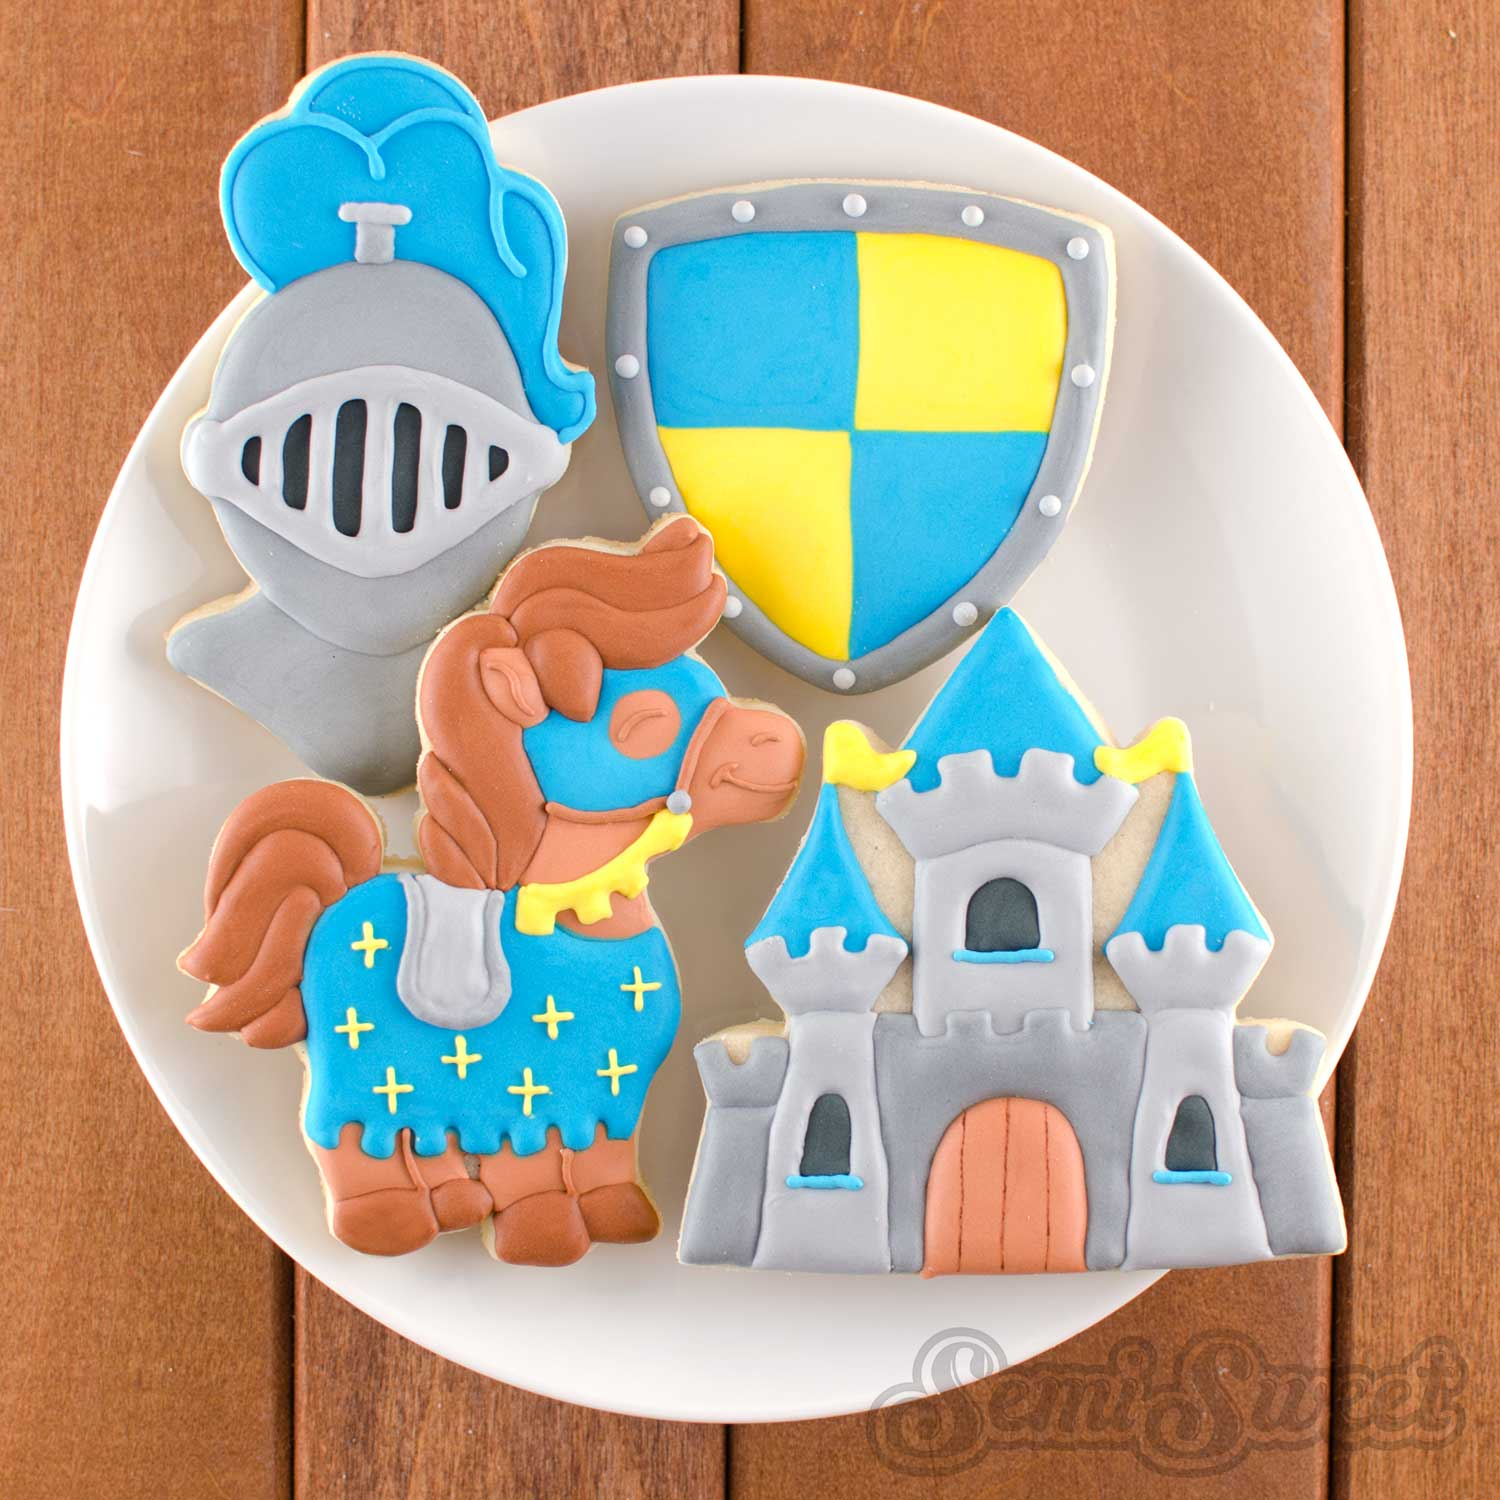 How to Make Fairytale Castle Cookies